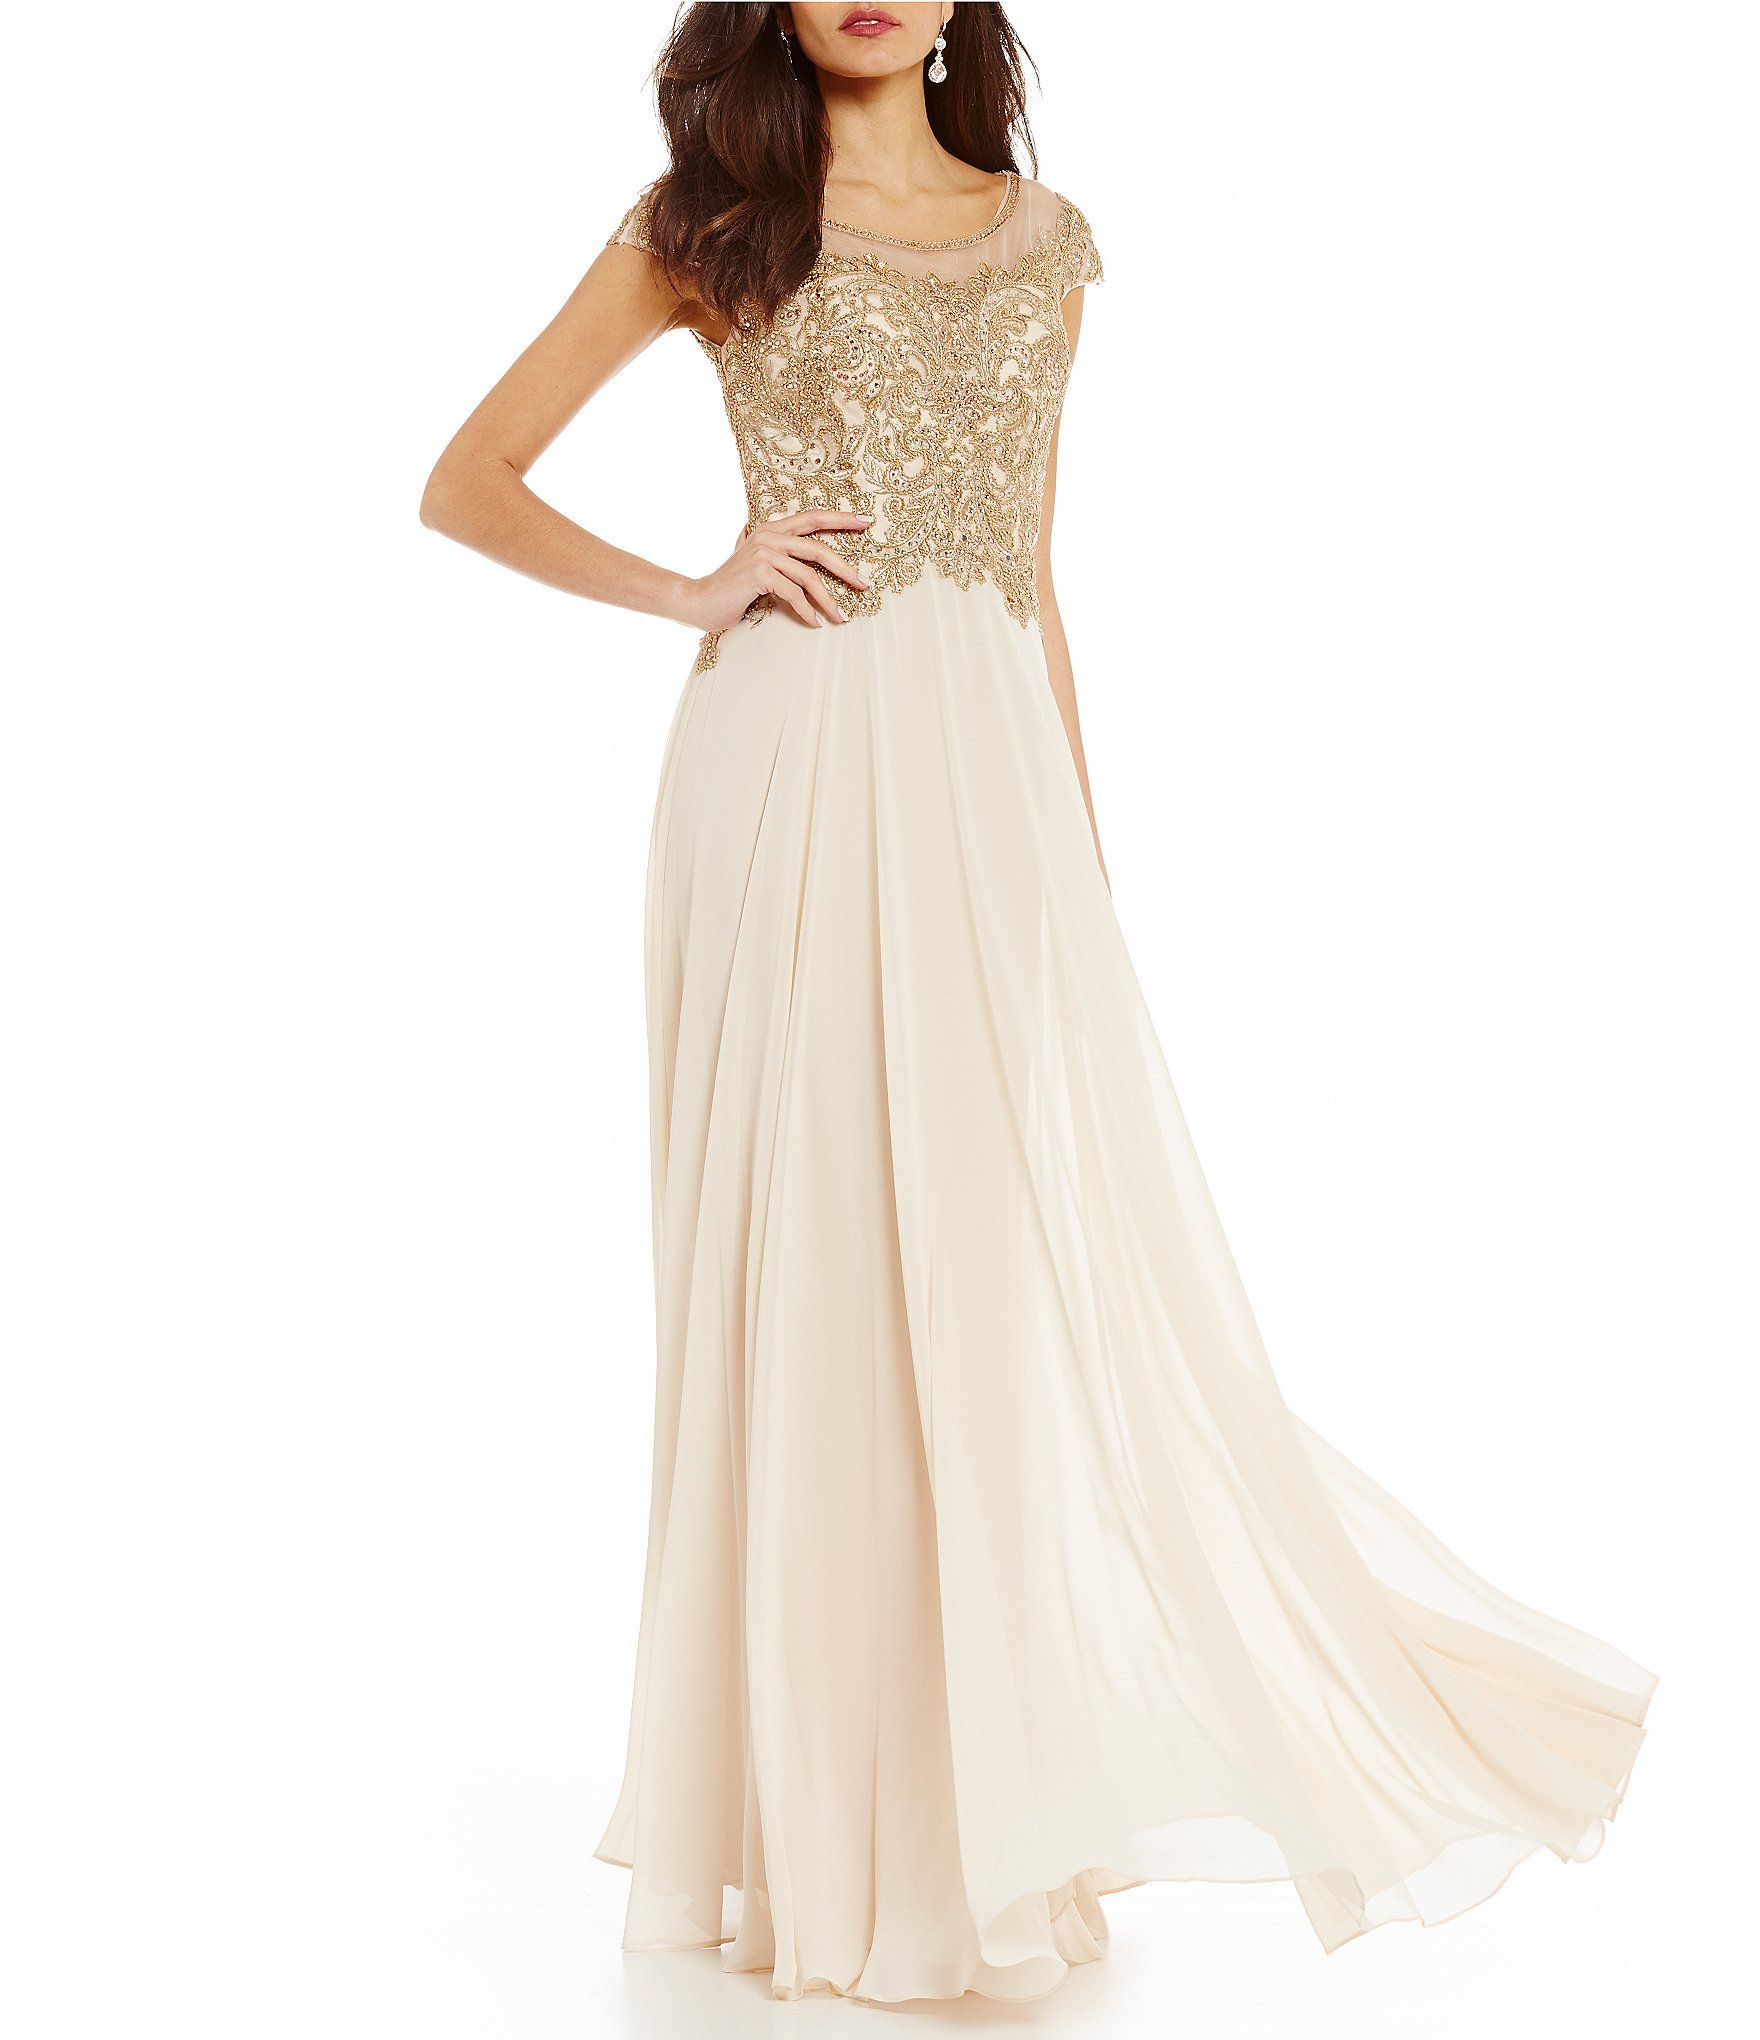 58ee028eadc Shop for MGNY Madeline Gardner New York Beaded Bodice Chiffon Gown at  Dillards.com. Visit Dillards.com to find clothing